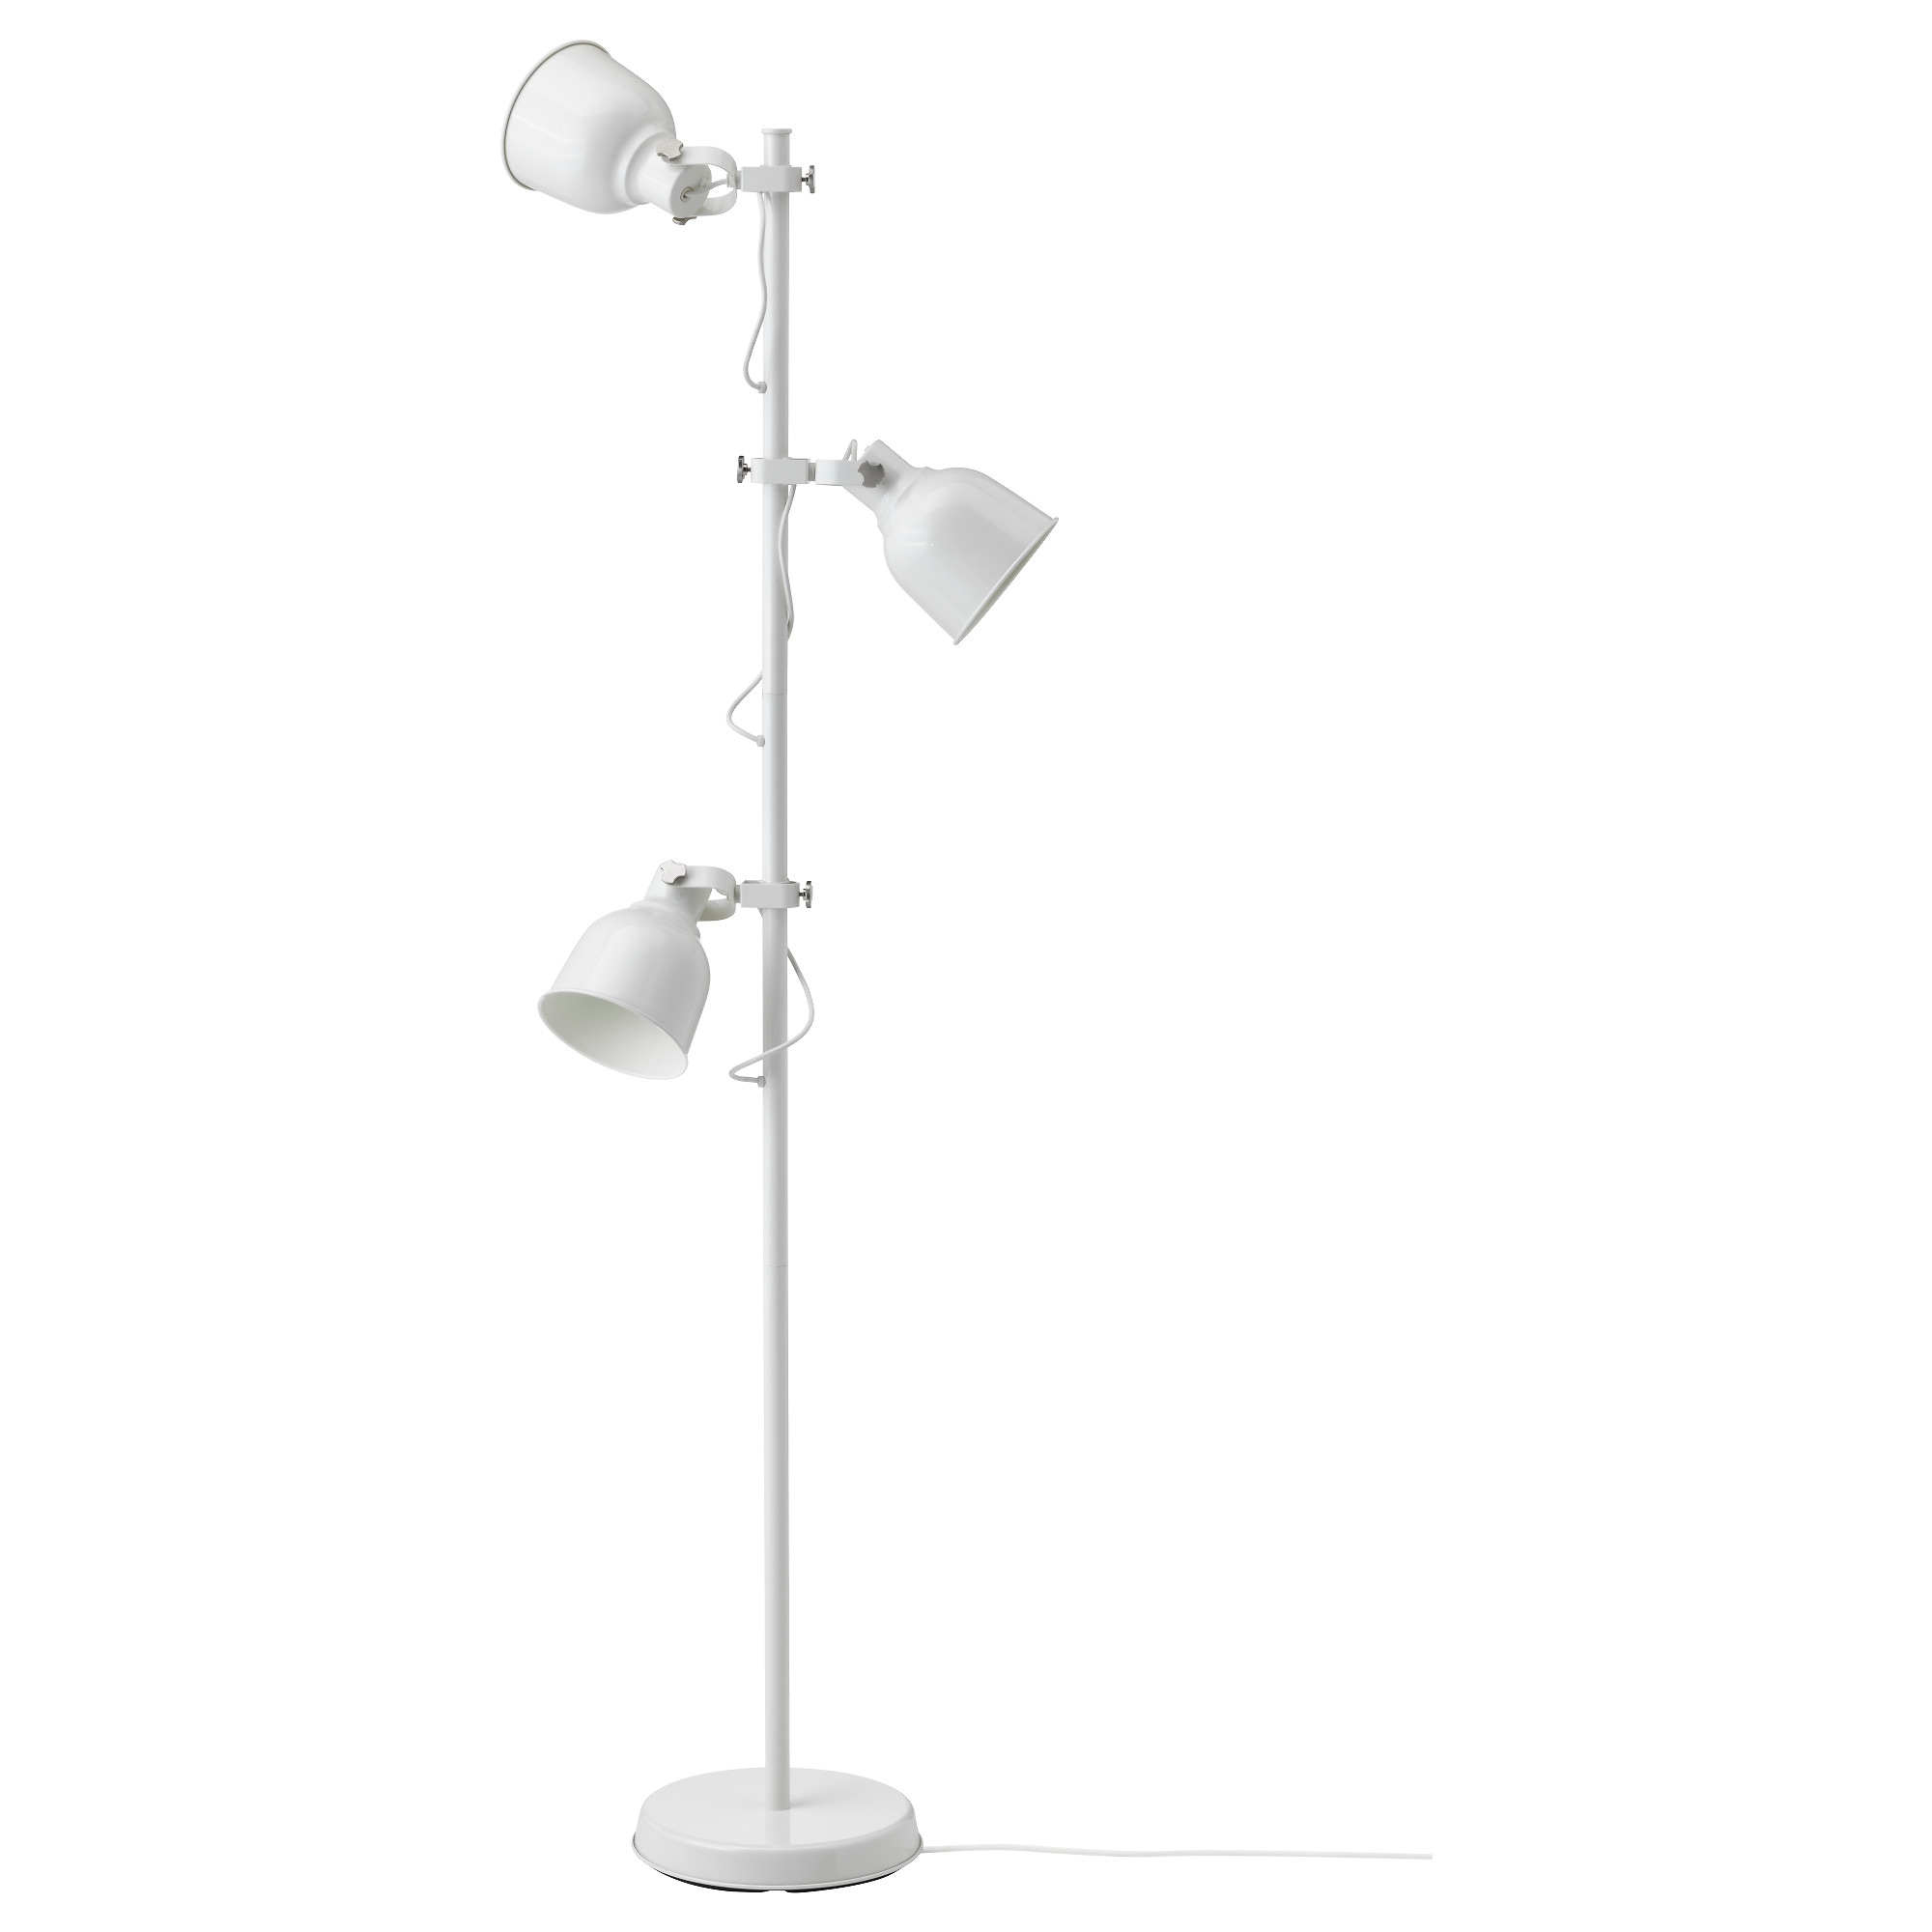 HEKTAR Floor lamp with 3-spotlights - IKEA